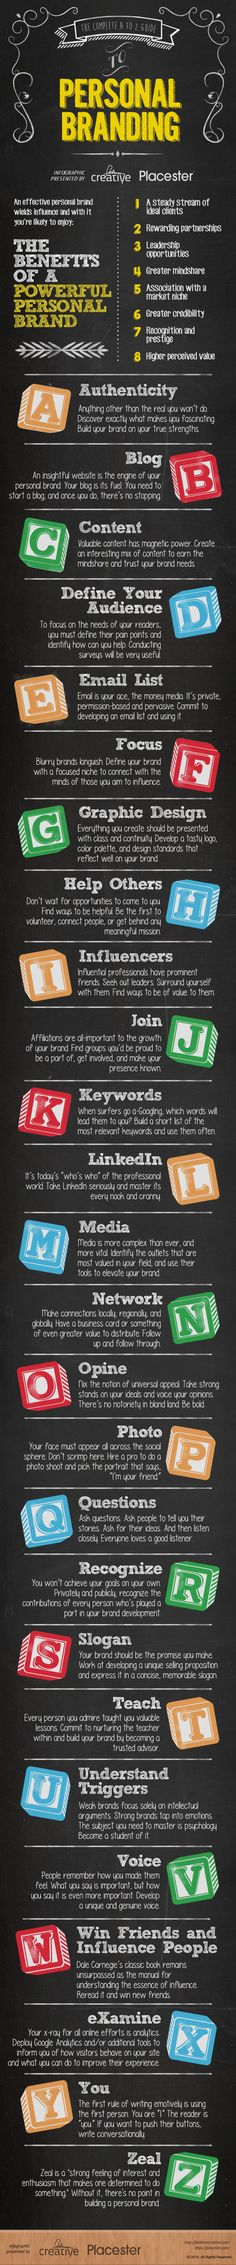 Infographic: The A to Z Guide to Personal Branding